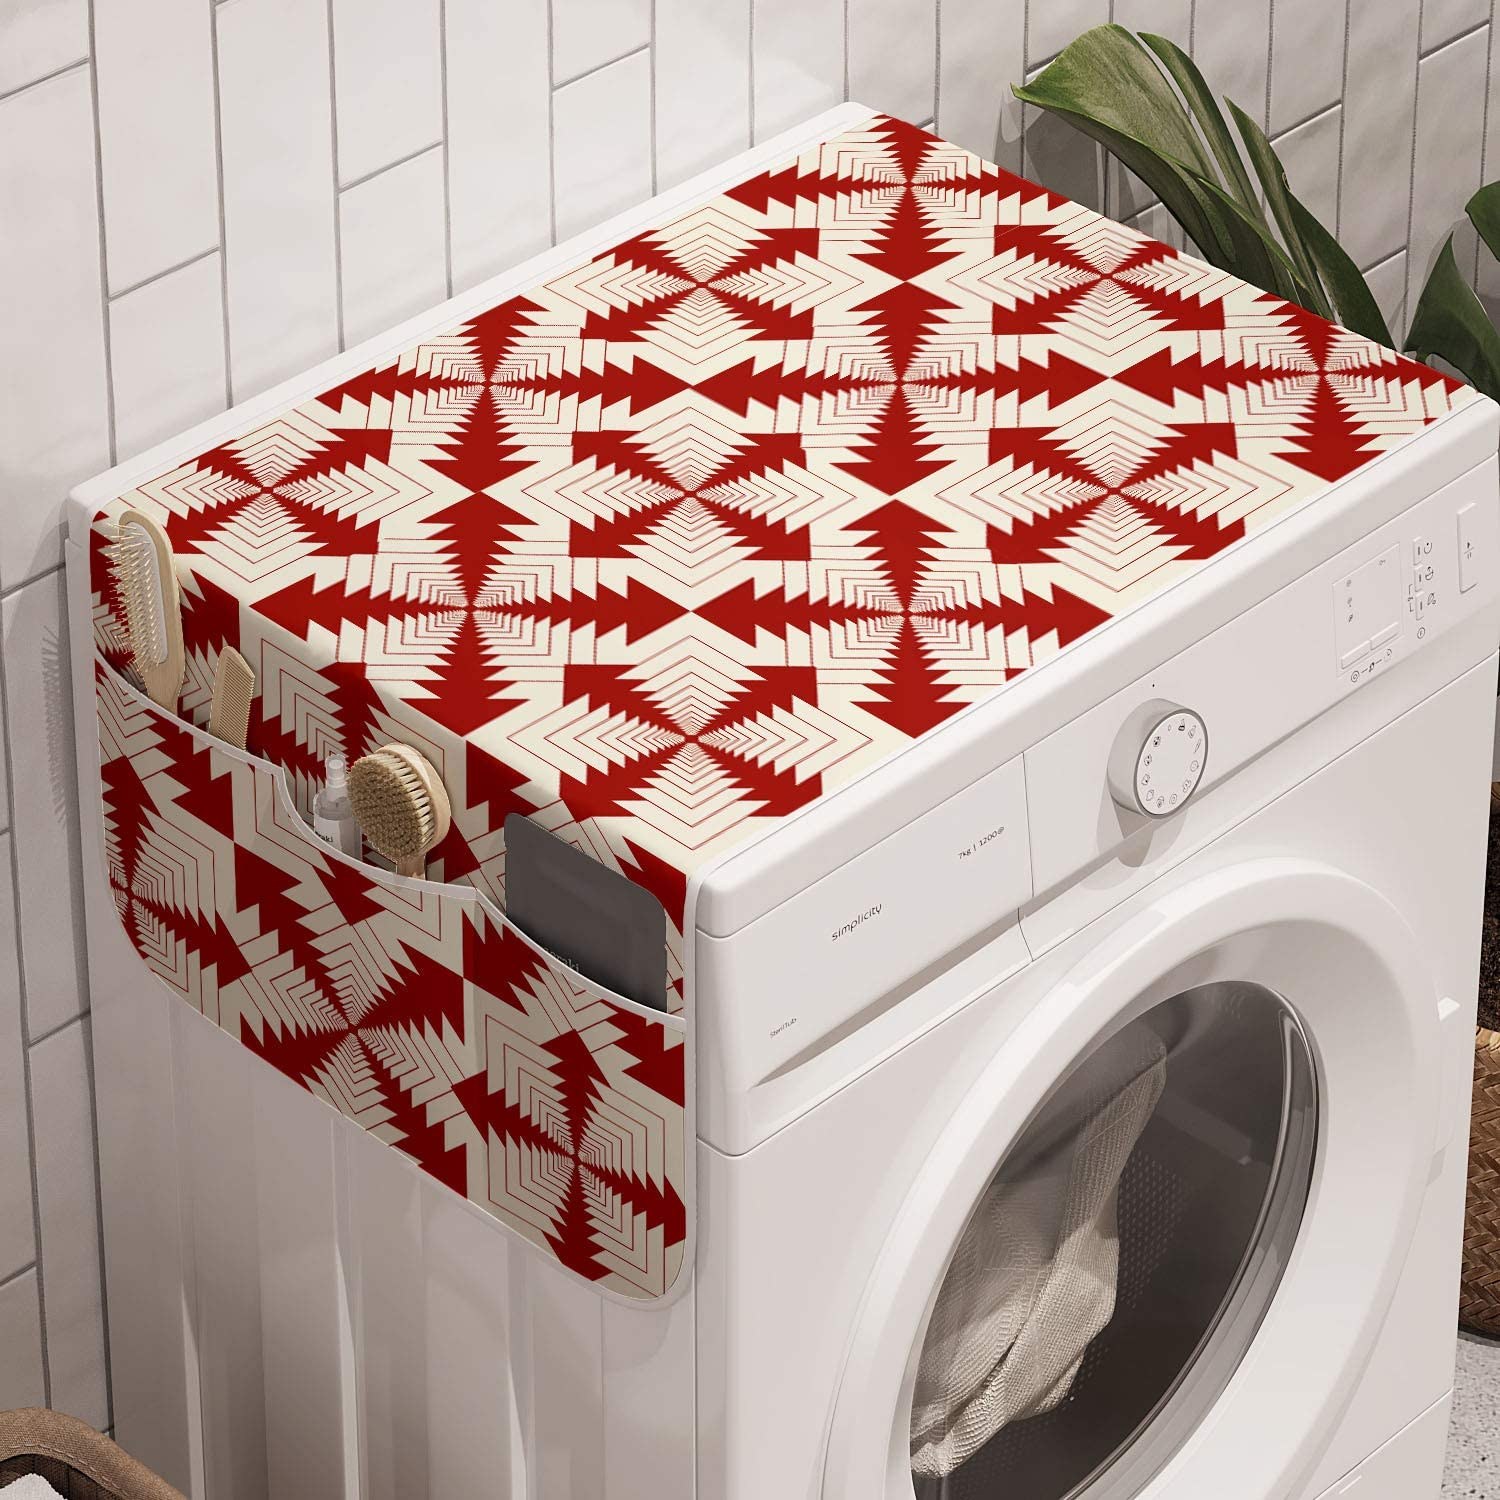 Amazon Com Ambesonne Abstract Washing Machine Organizer Repetitive Intertwined Frames Funky Style Modern Retro Pattern Art Print Anti Slip Fabric Cover For Washers And Dryers 47 X 18 5 Vermilion And Ivory Kitchen Dining